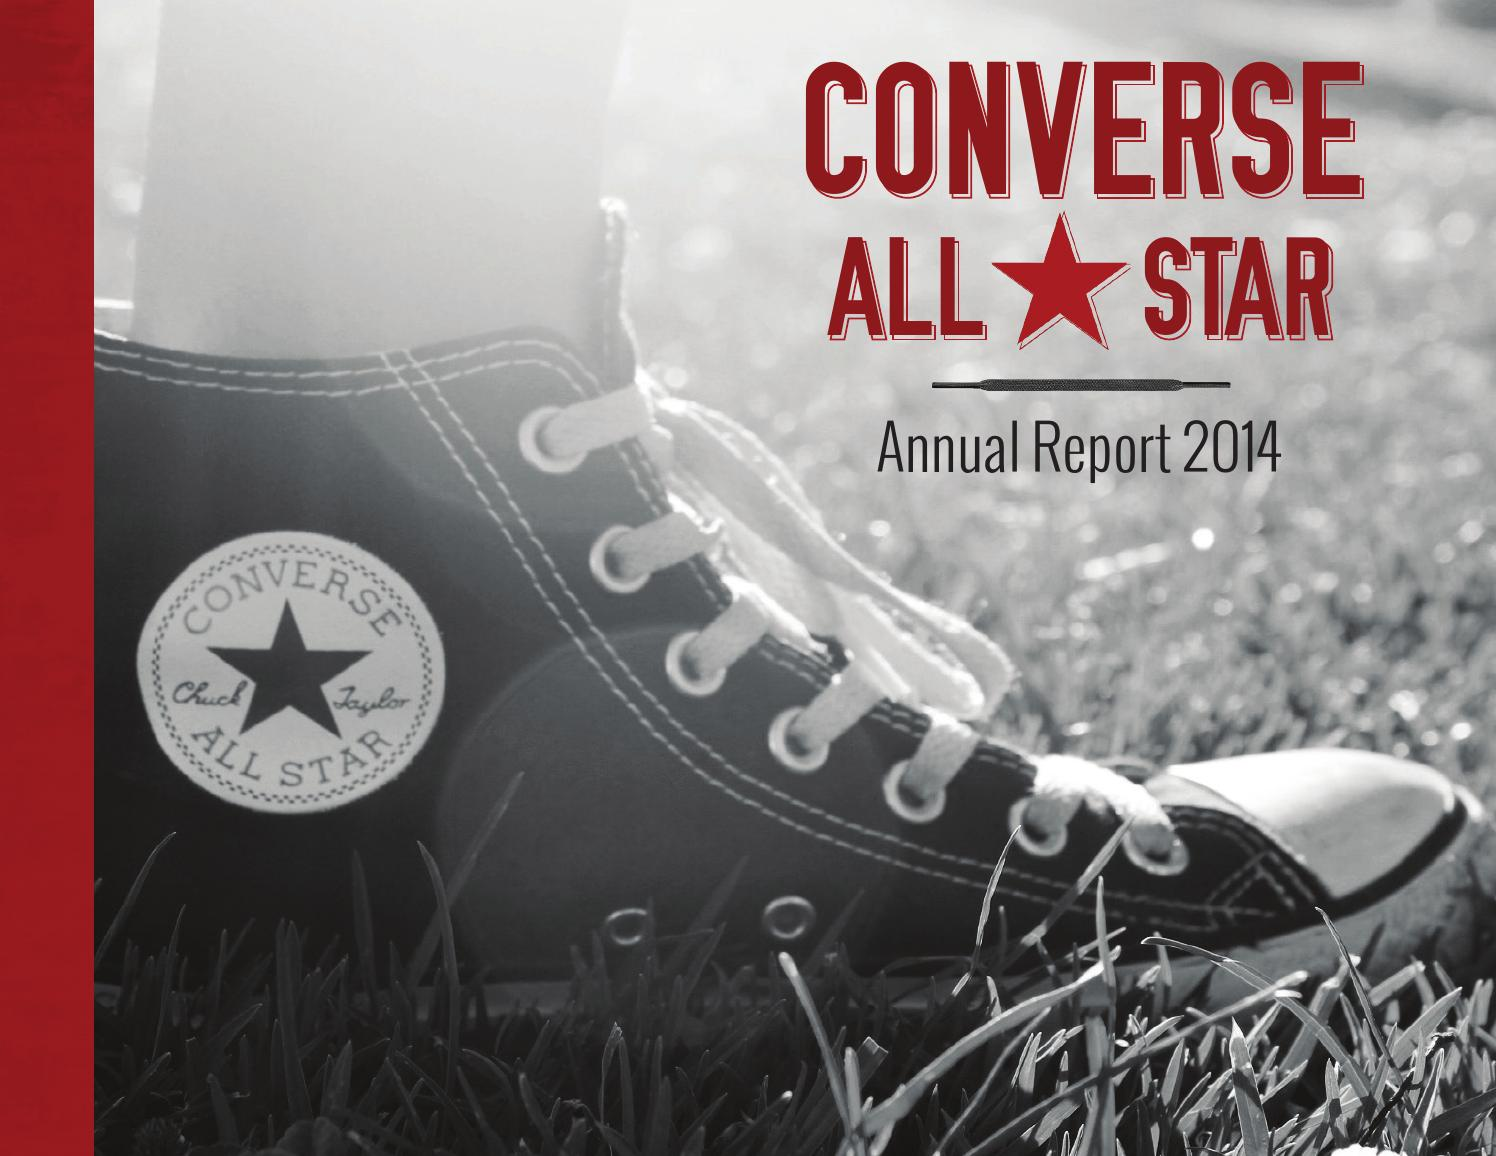 converse shoes annual report